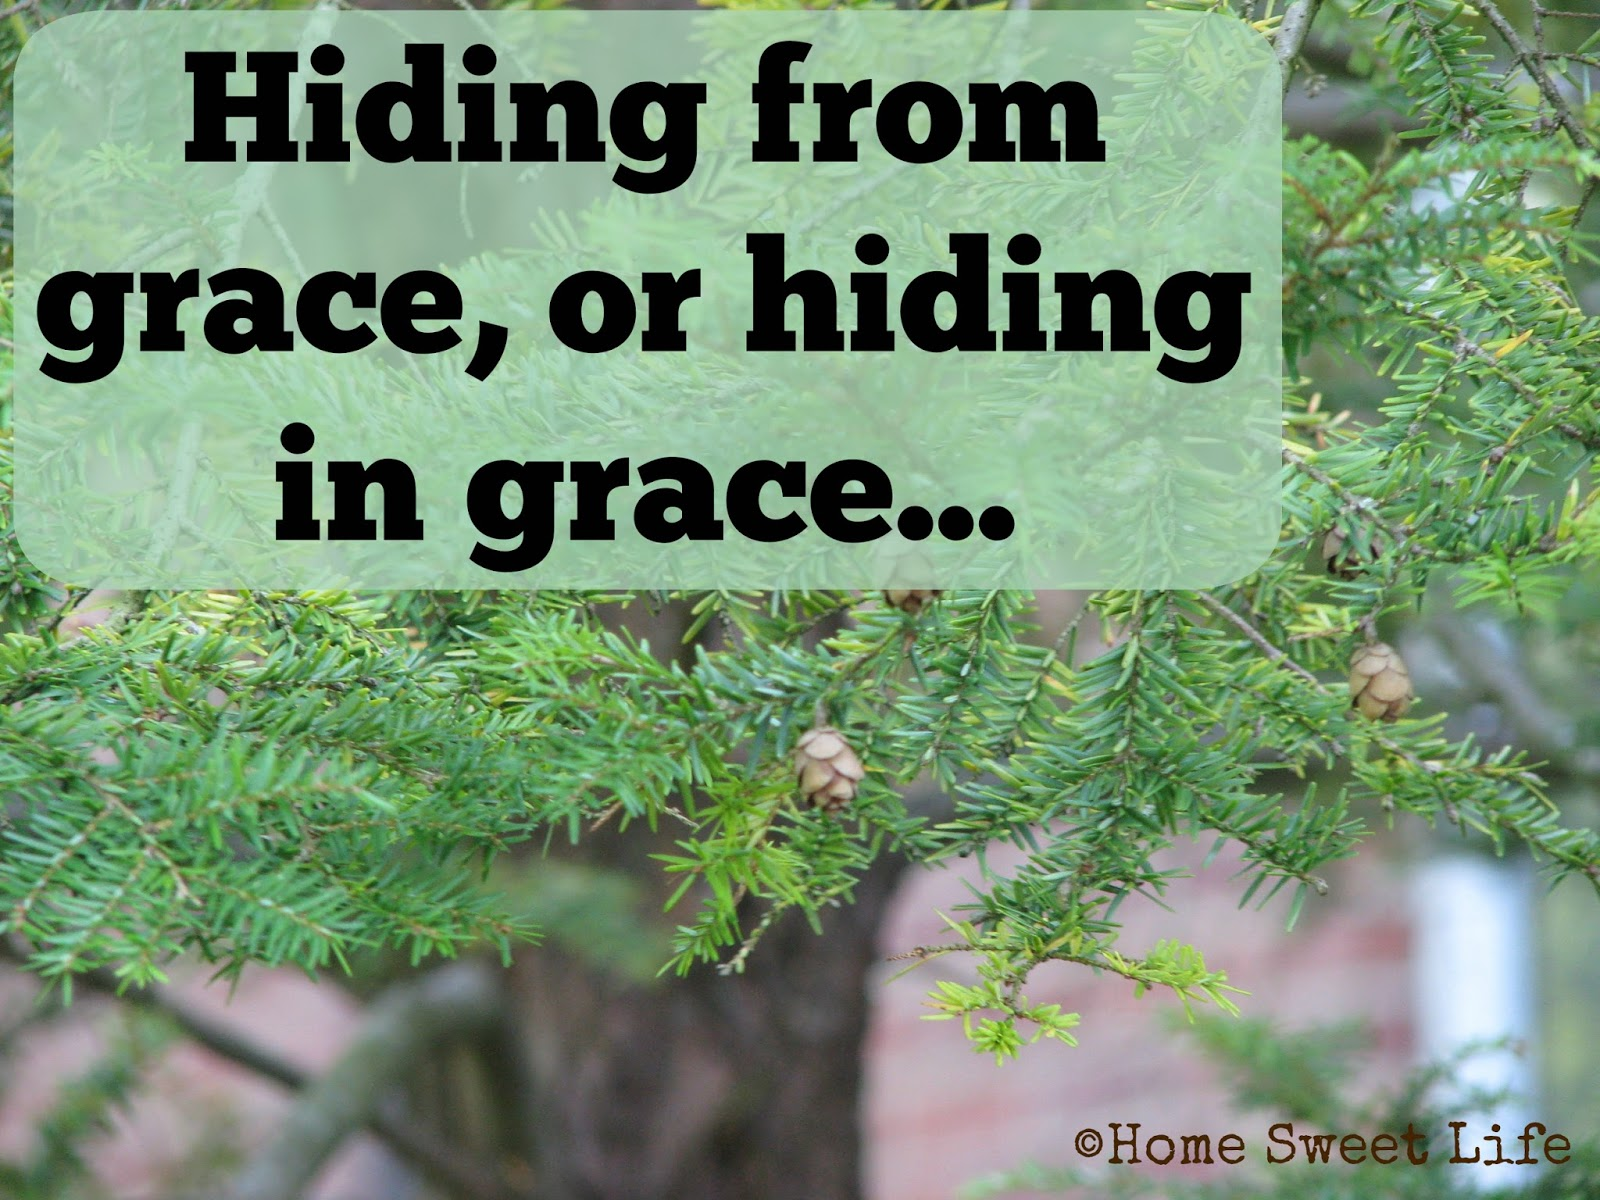 Hiding in grace